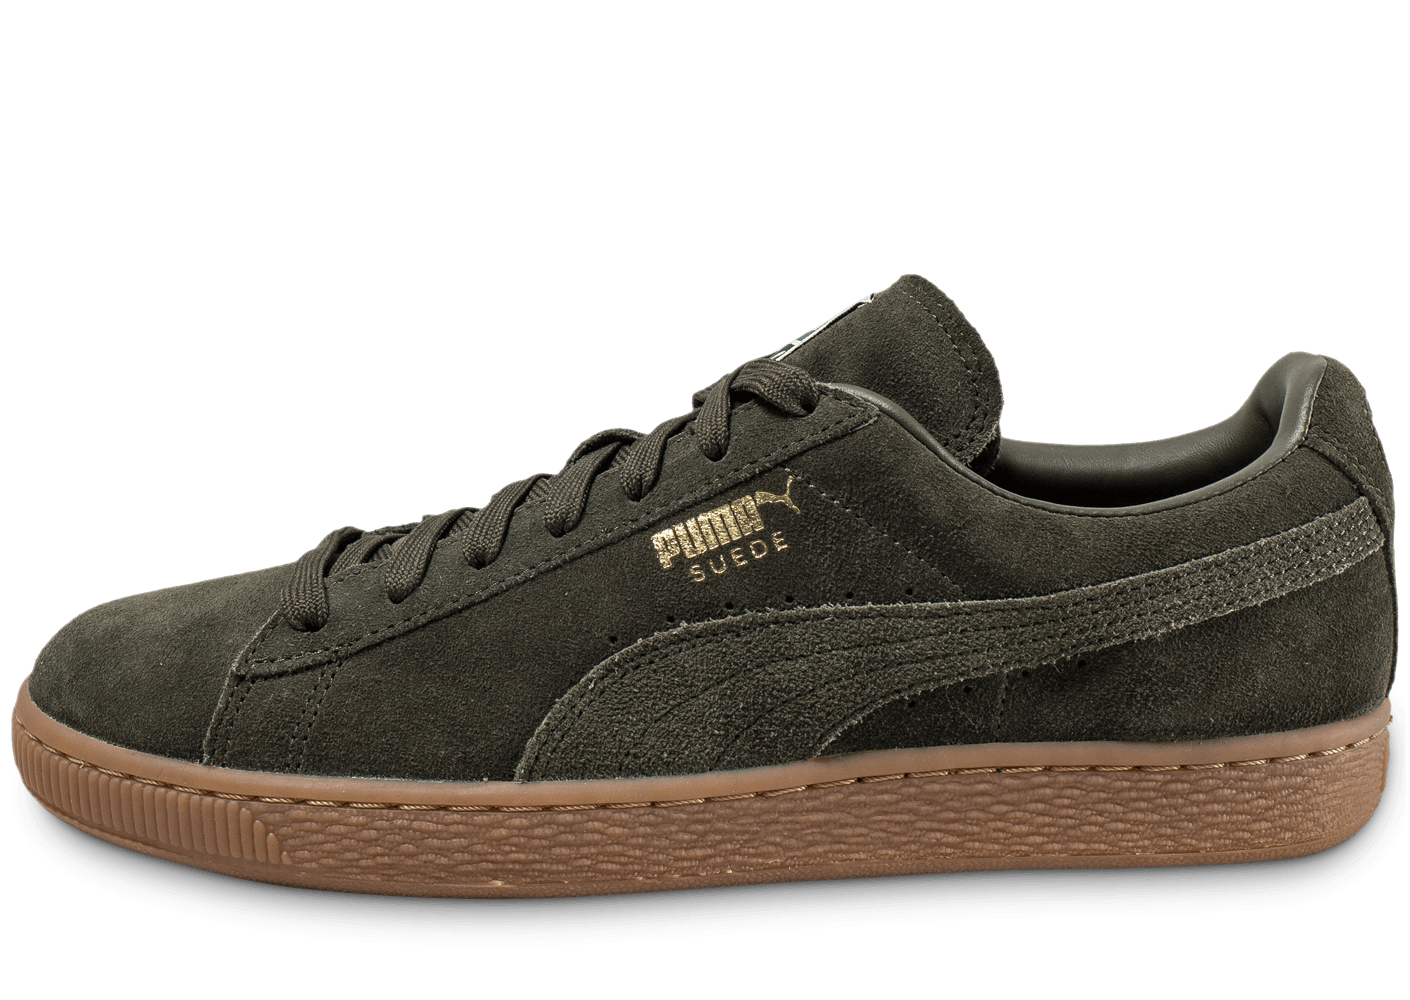 puma suede classic gum verte chaussures homme chausport. Black Bedroom Furniture Sets. Home Design Ideas